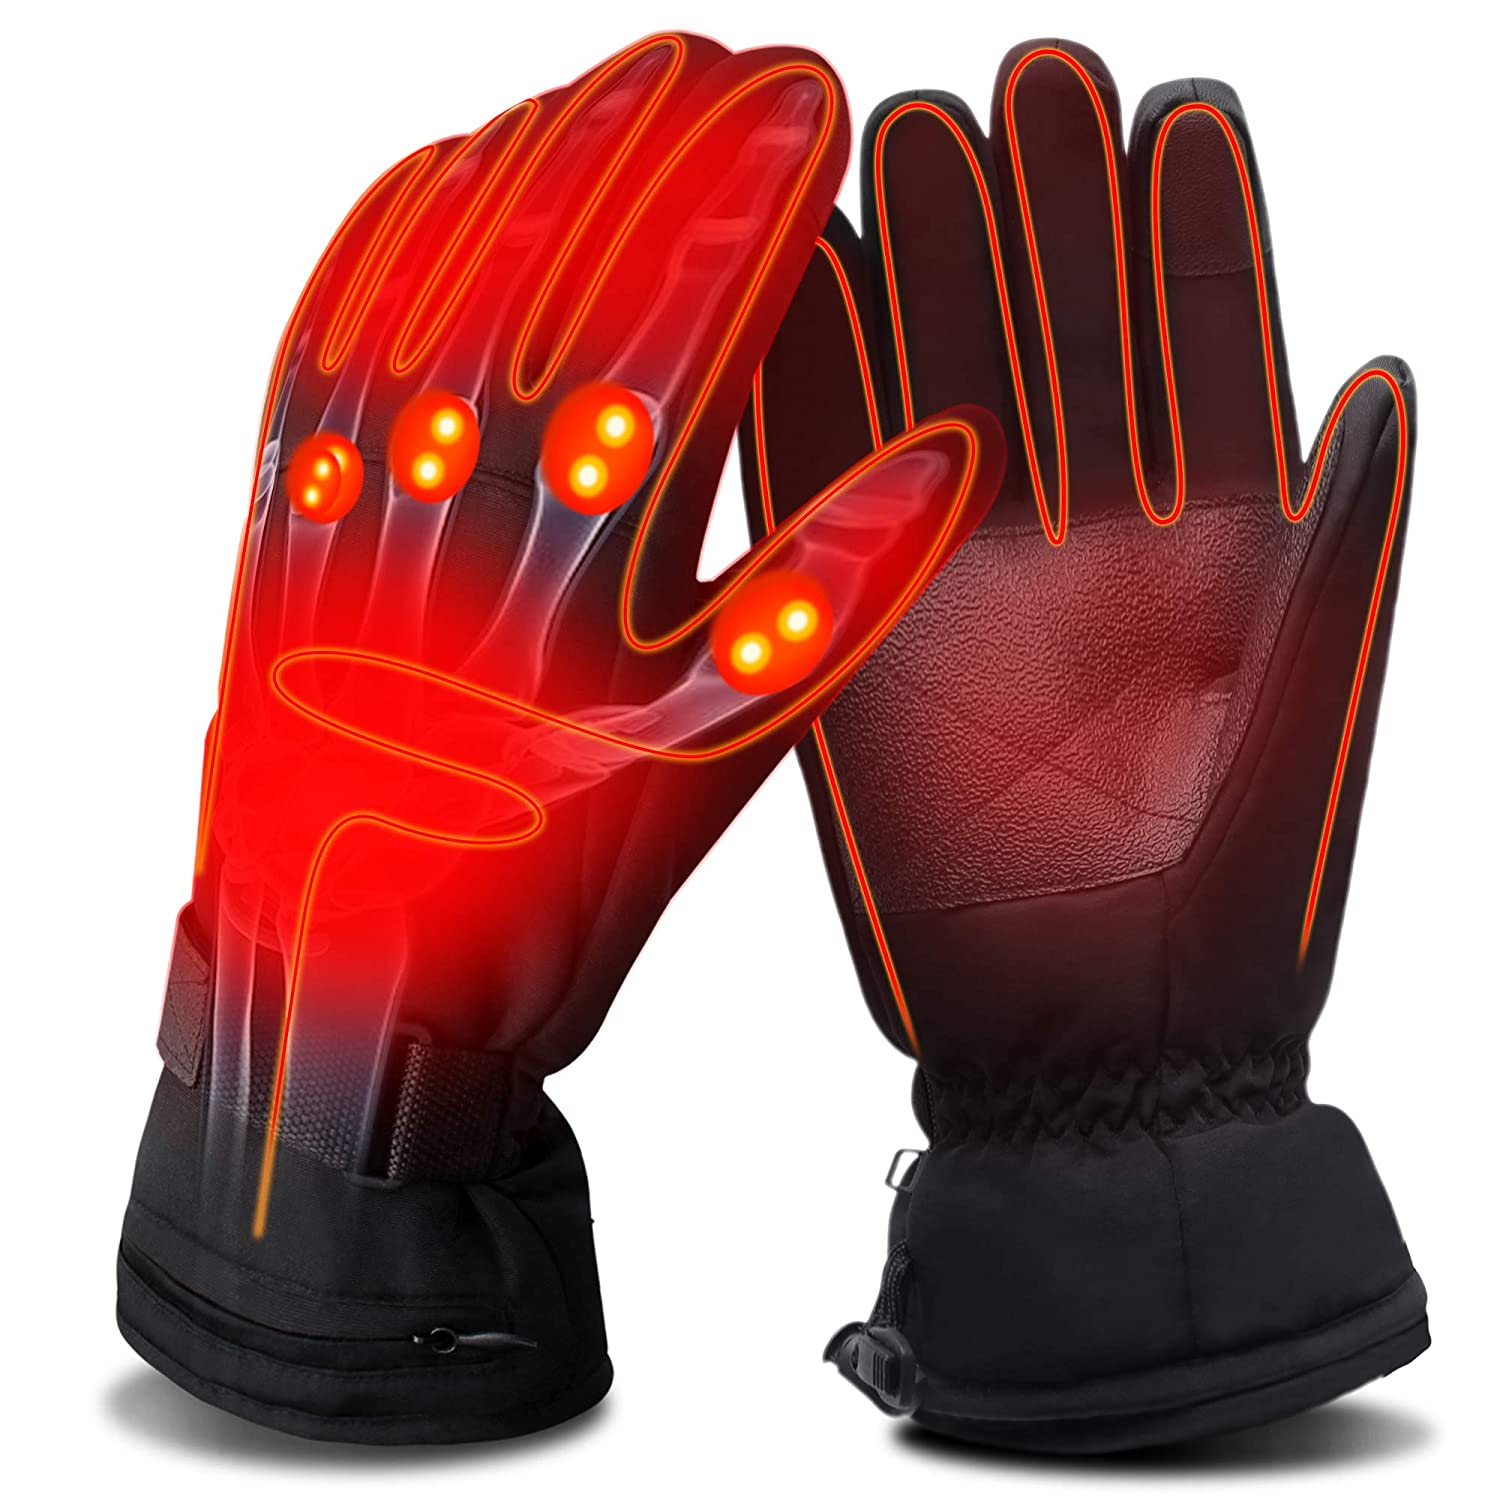 Top 10 Sysrion Heating Gloves